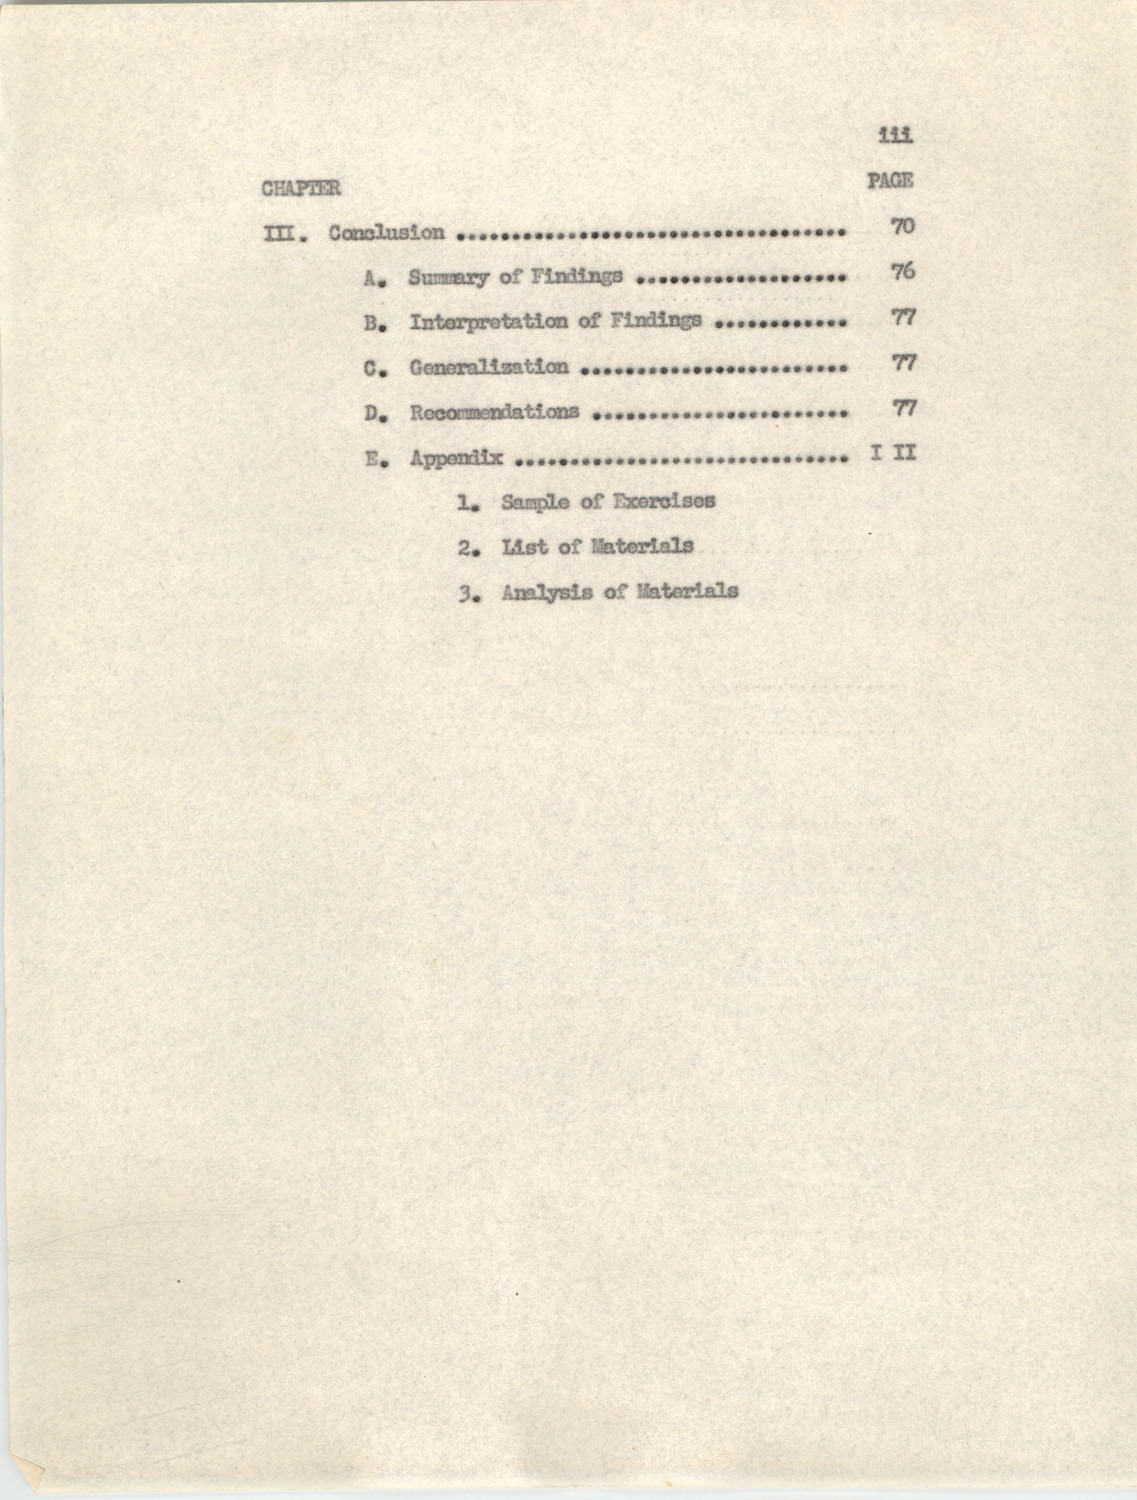 An Experiment in Individualizing Instruction in Reading in a Sixth Grade Class, 1946, Table of Contents 111